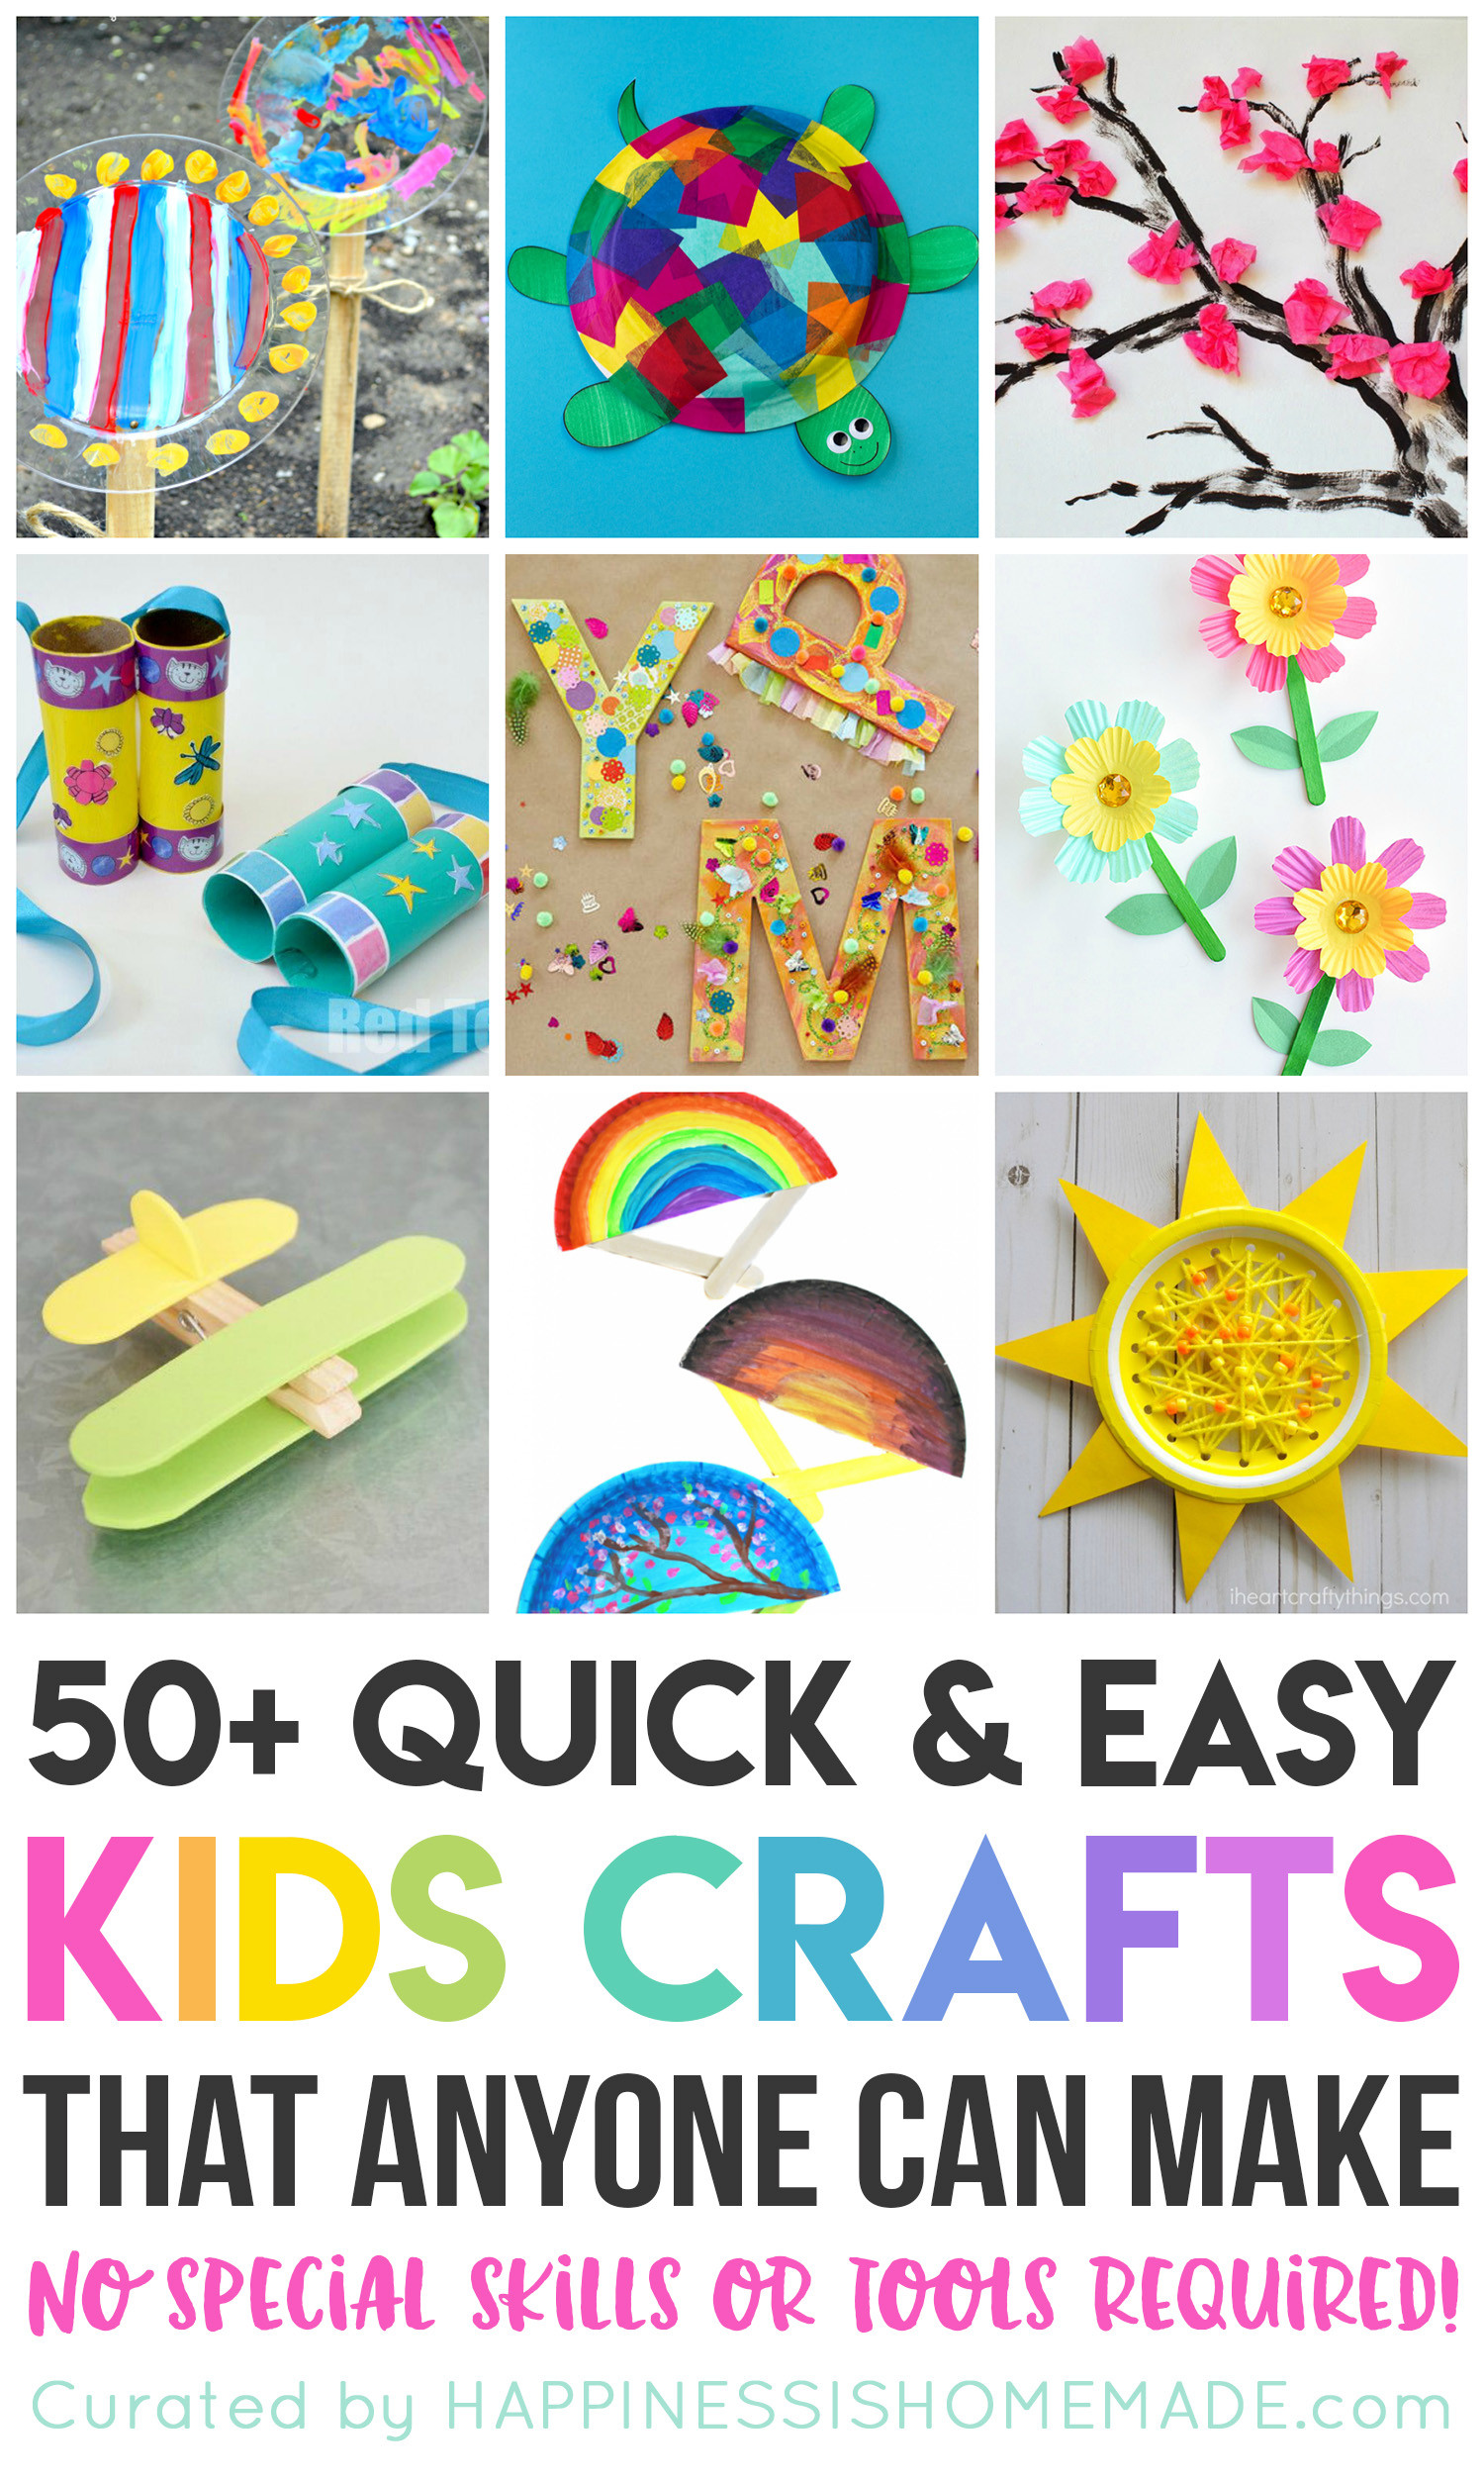 Easy Projects For Preschoolers  50 Quick & Easy Kids Crafts that ANYONE Can Make